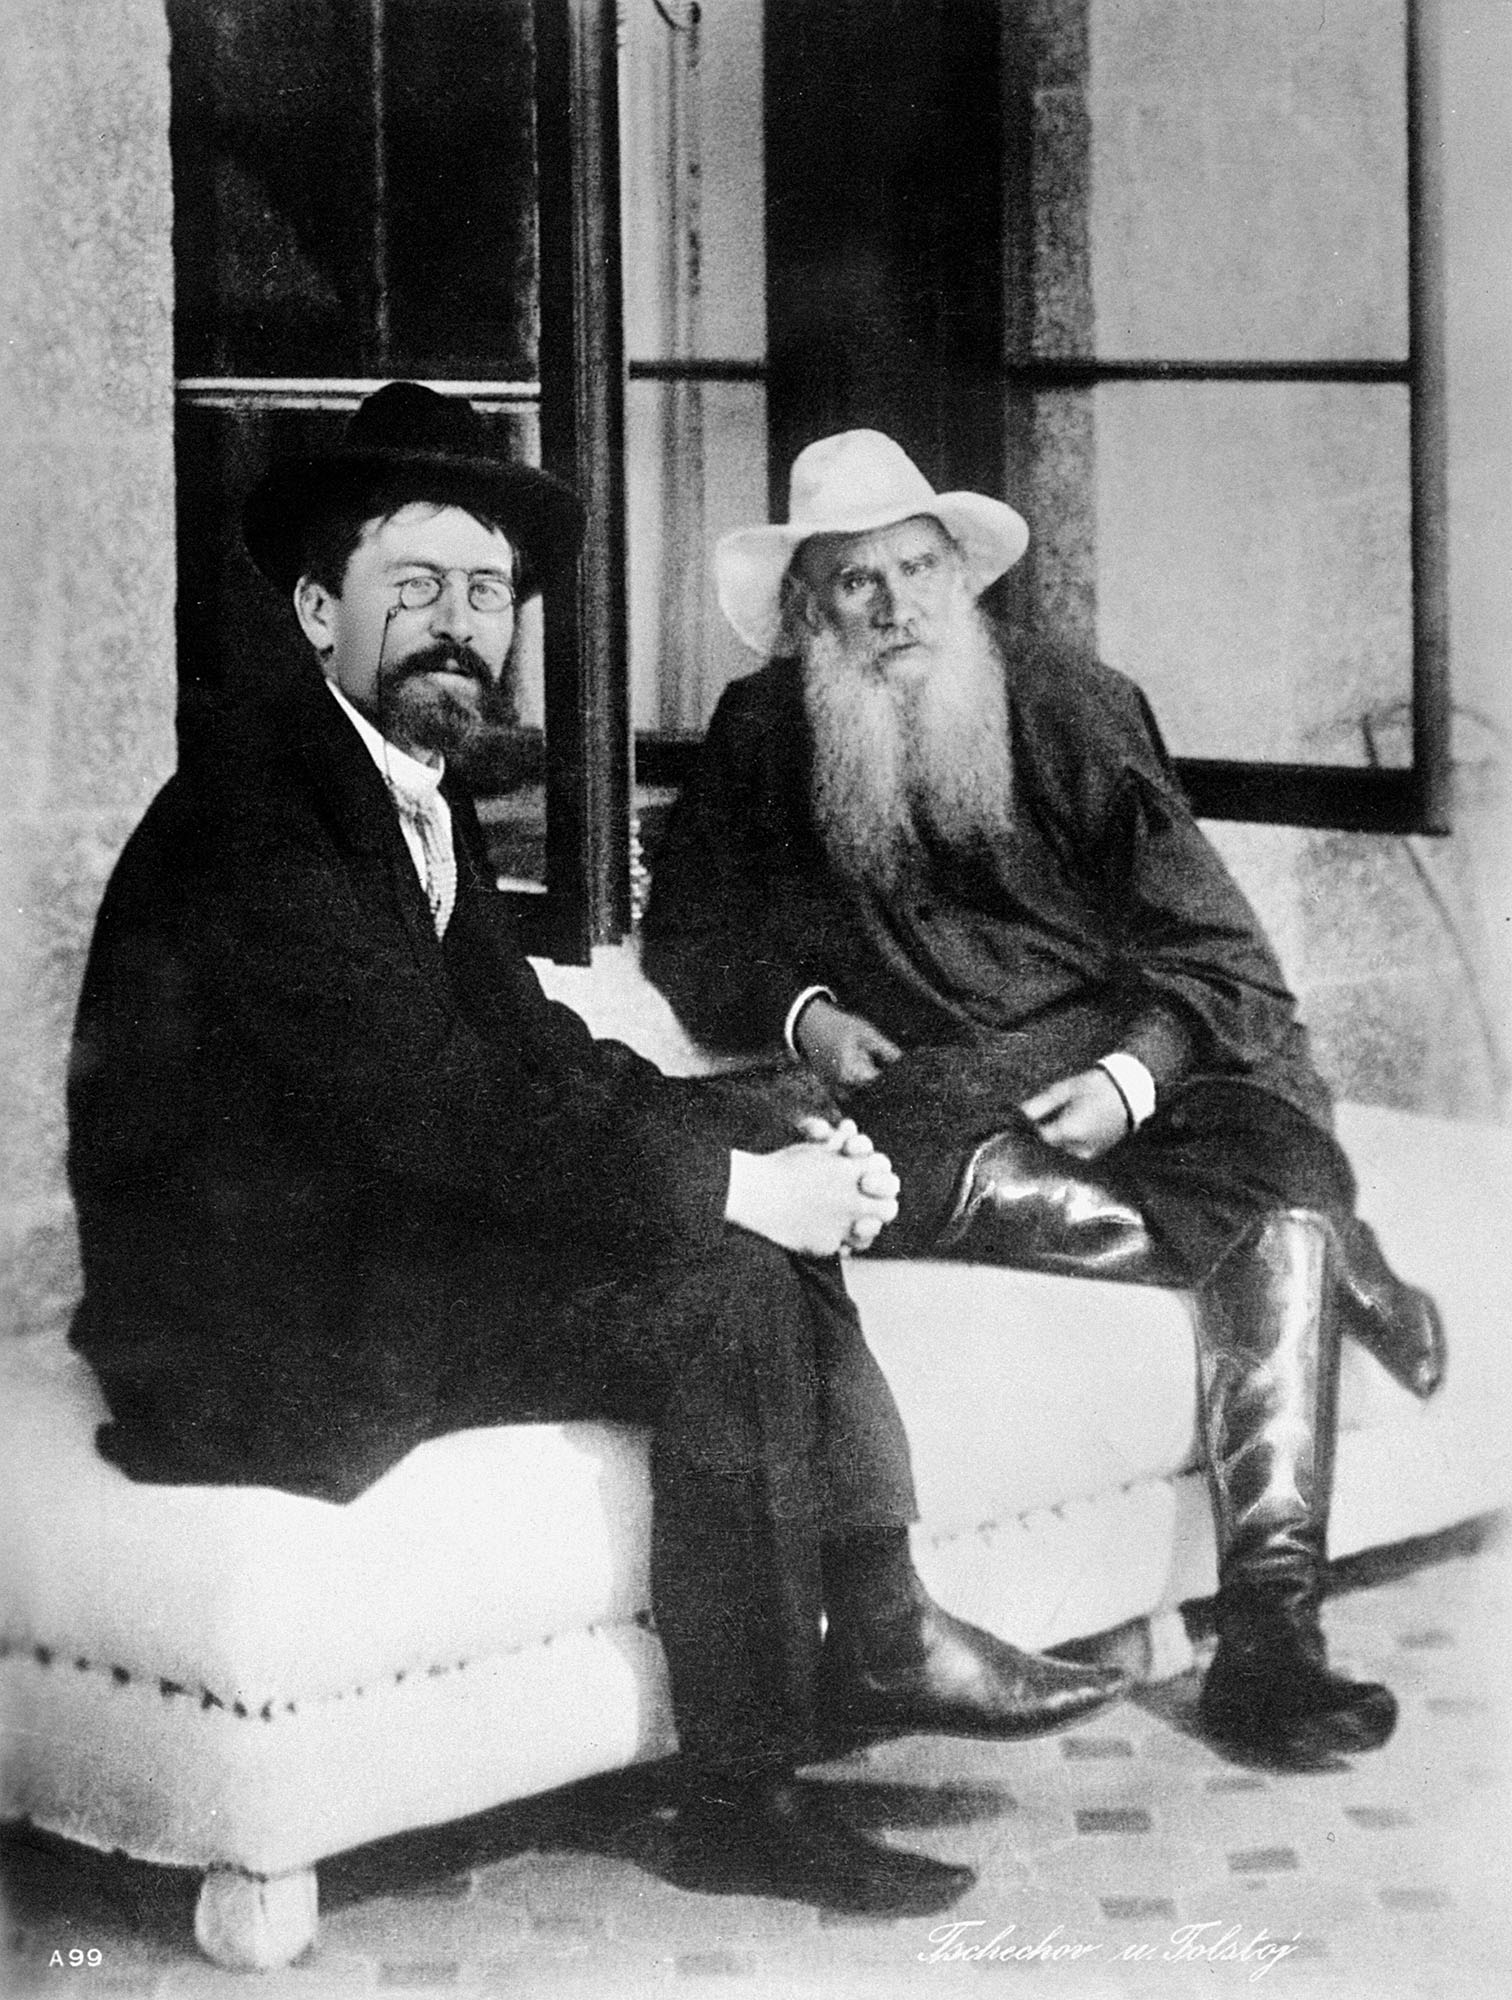 File:Tolstoy and chekhov.jpg